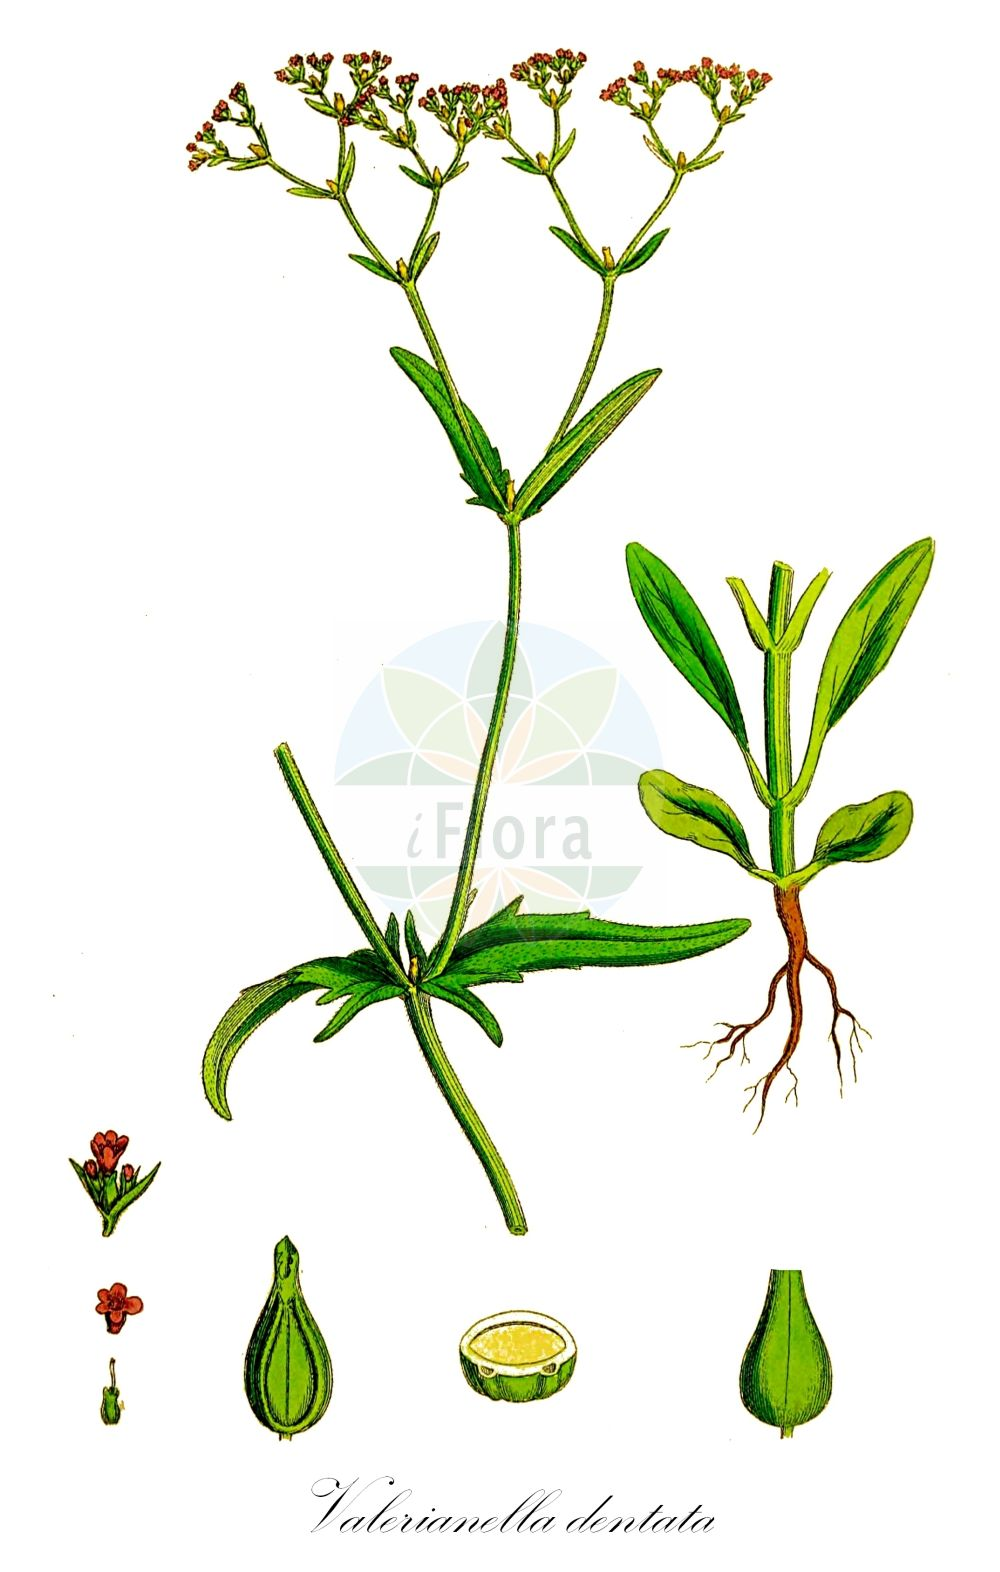 Historische Abbildung von Valerianella dentata (Gezaehnter Feldsalat - Narrow-fruited Cornsalad). Das Bild zeigt Blatt, Bluete, Frucht und Same. ---- Historical Drawing of Valerianella dentata (Gezaehnter Feldsalat - Narrow-fruited Cornsalad).The image is showing leaf, flower, fruit and seed.(Valerianella dentata,Gezaehnter Feldsalat,Narrow-fruited Cornsalad,Fedia dentata,Fedia morisonii,Valerianella mixta,Valerianella morisonii,,Narrowfruit Cornsalad,Valerianella,Rapunzel,Cornsalad,Caprifoliaceae,Geissblattgewaechse,Honeysuckle family,Blatt,Bluete,Frucht,Same,leaf,flower,fruit,seed,Sowerby (1790-1813))